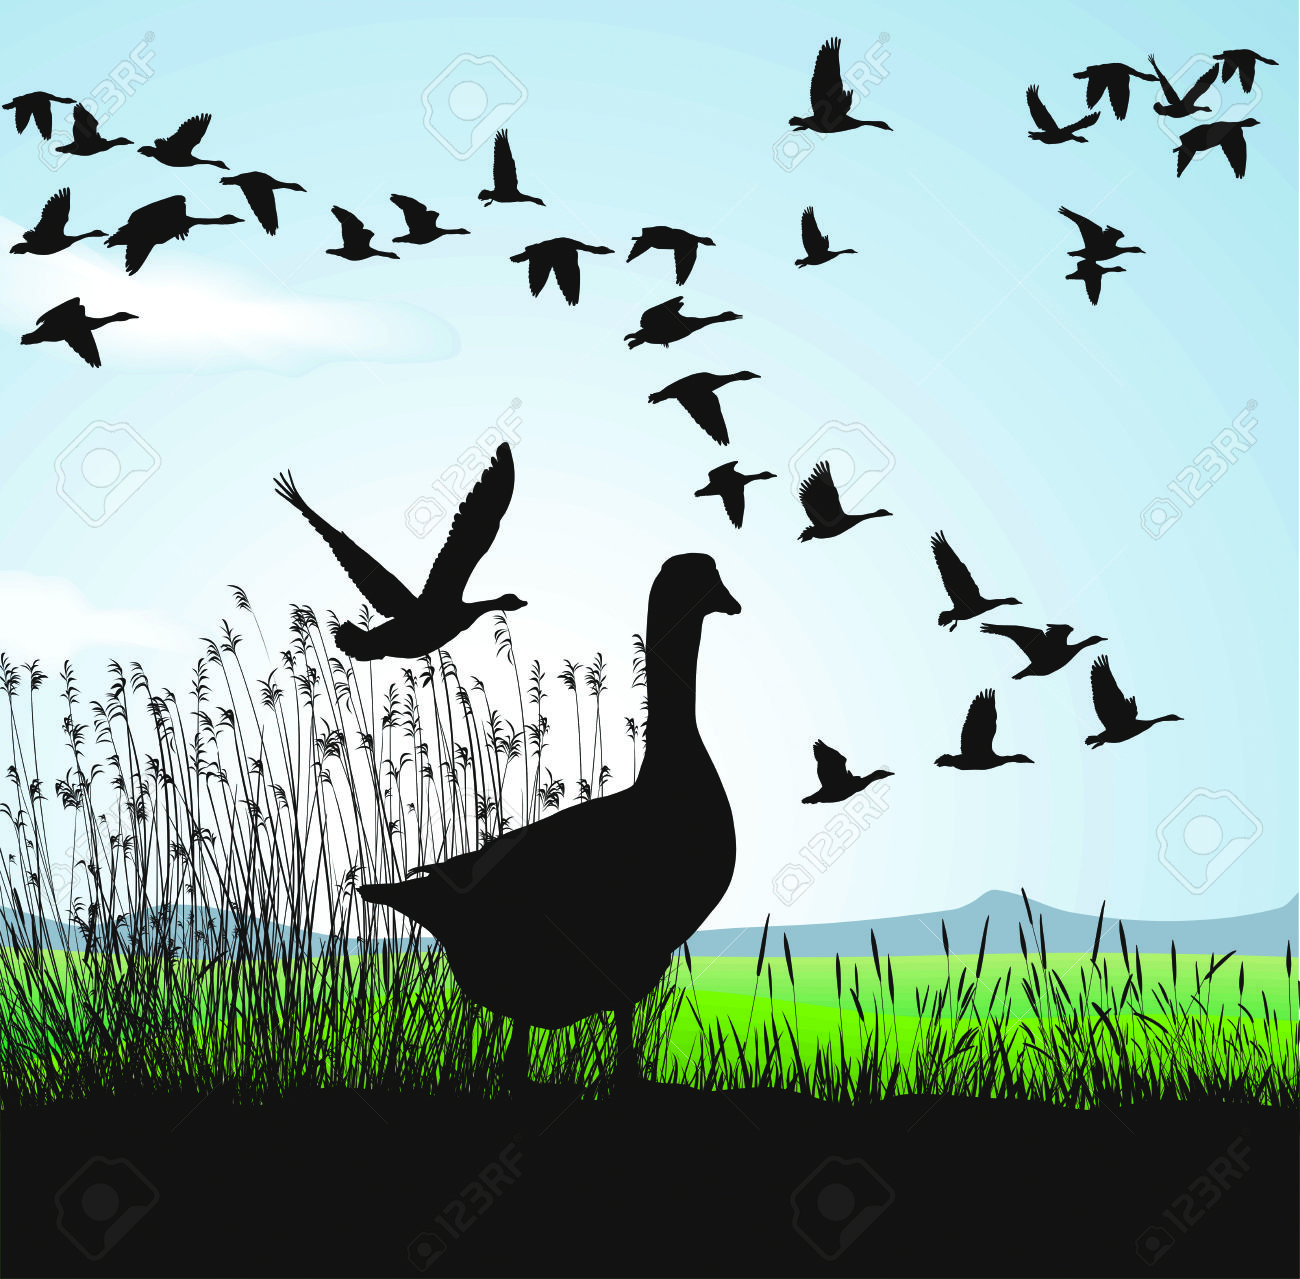 Geese Migration clipart #1, Download drawings